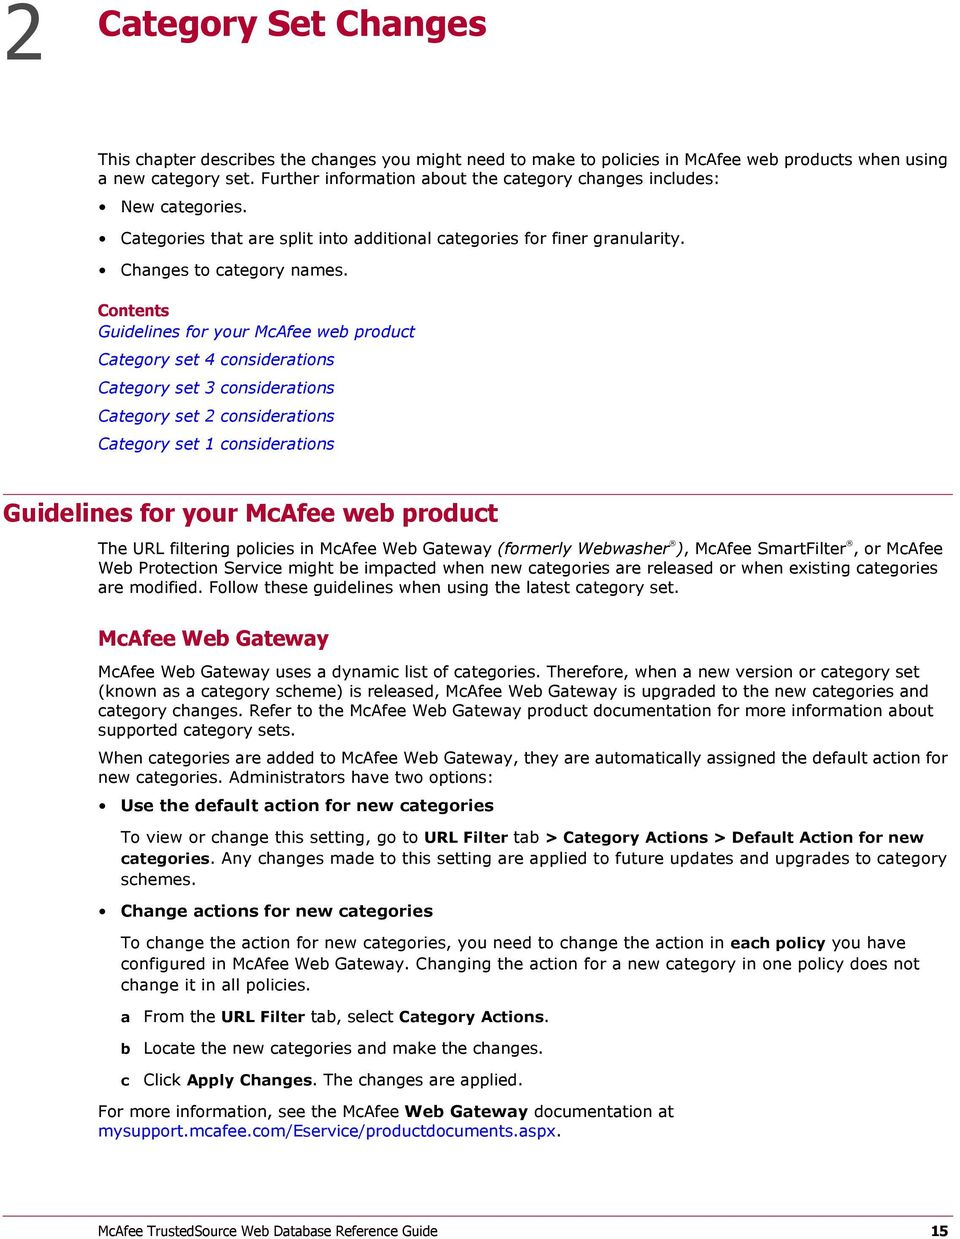 Contents Guidelines for your McAfee web product Category set 4 considerations Category set 3 considerations Category set 2 considerations Category set 1 considerations Guidelines for your McAfee web